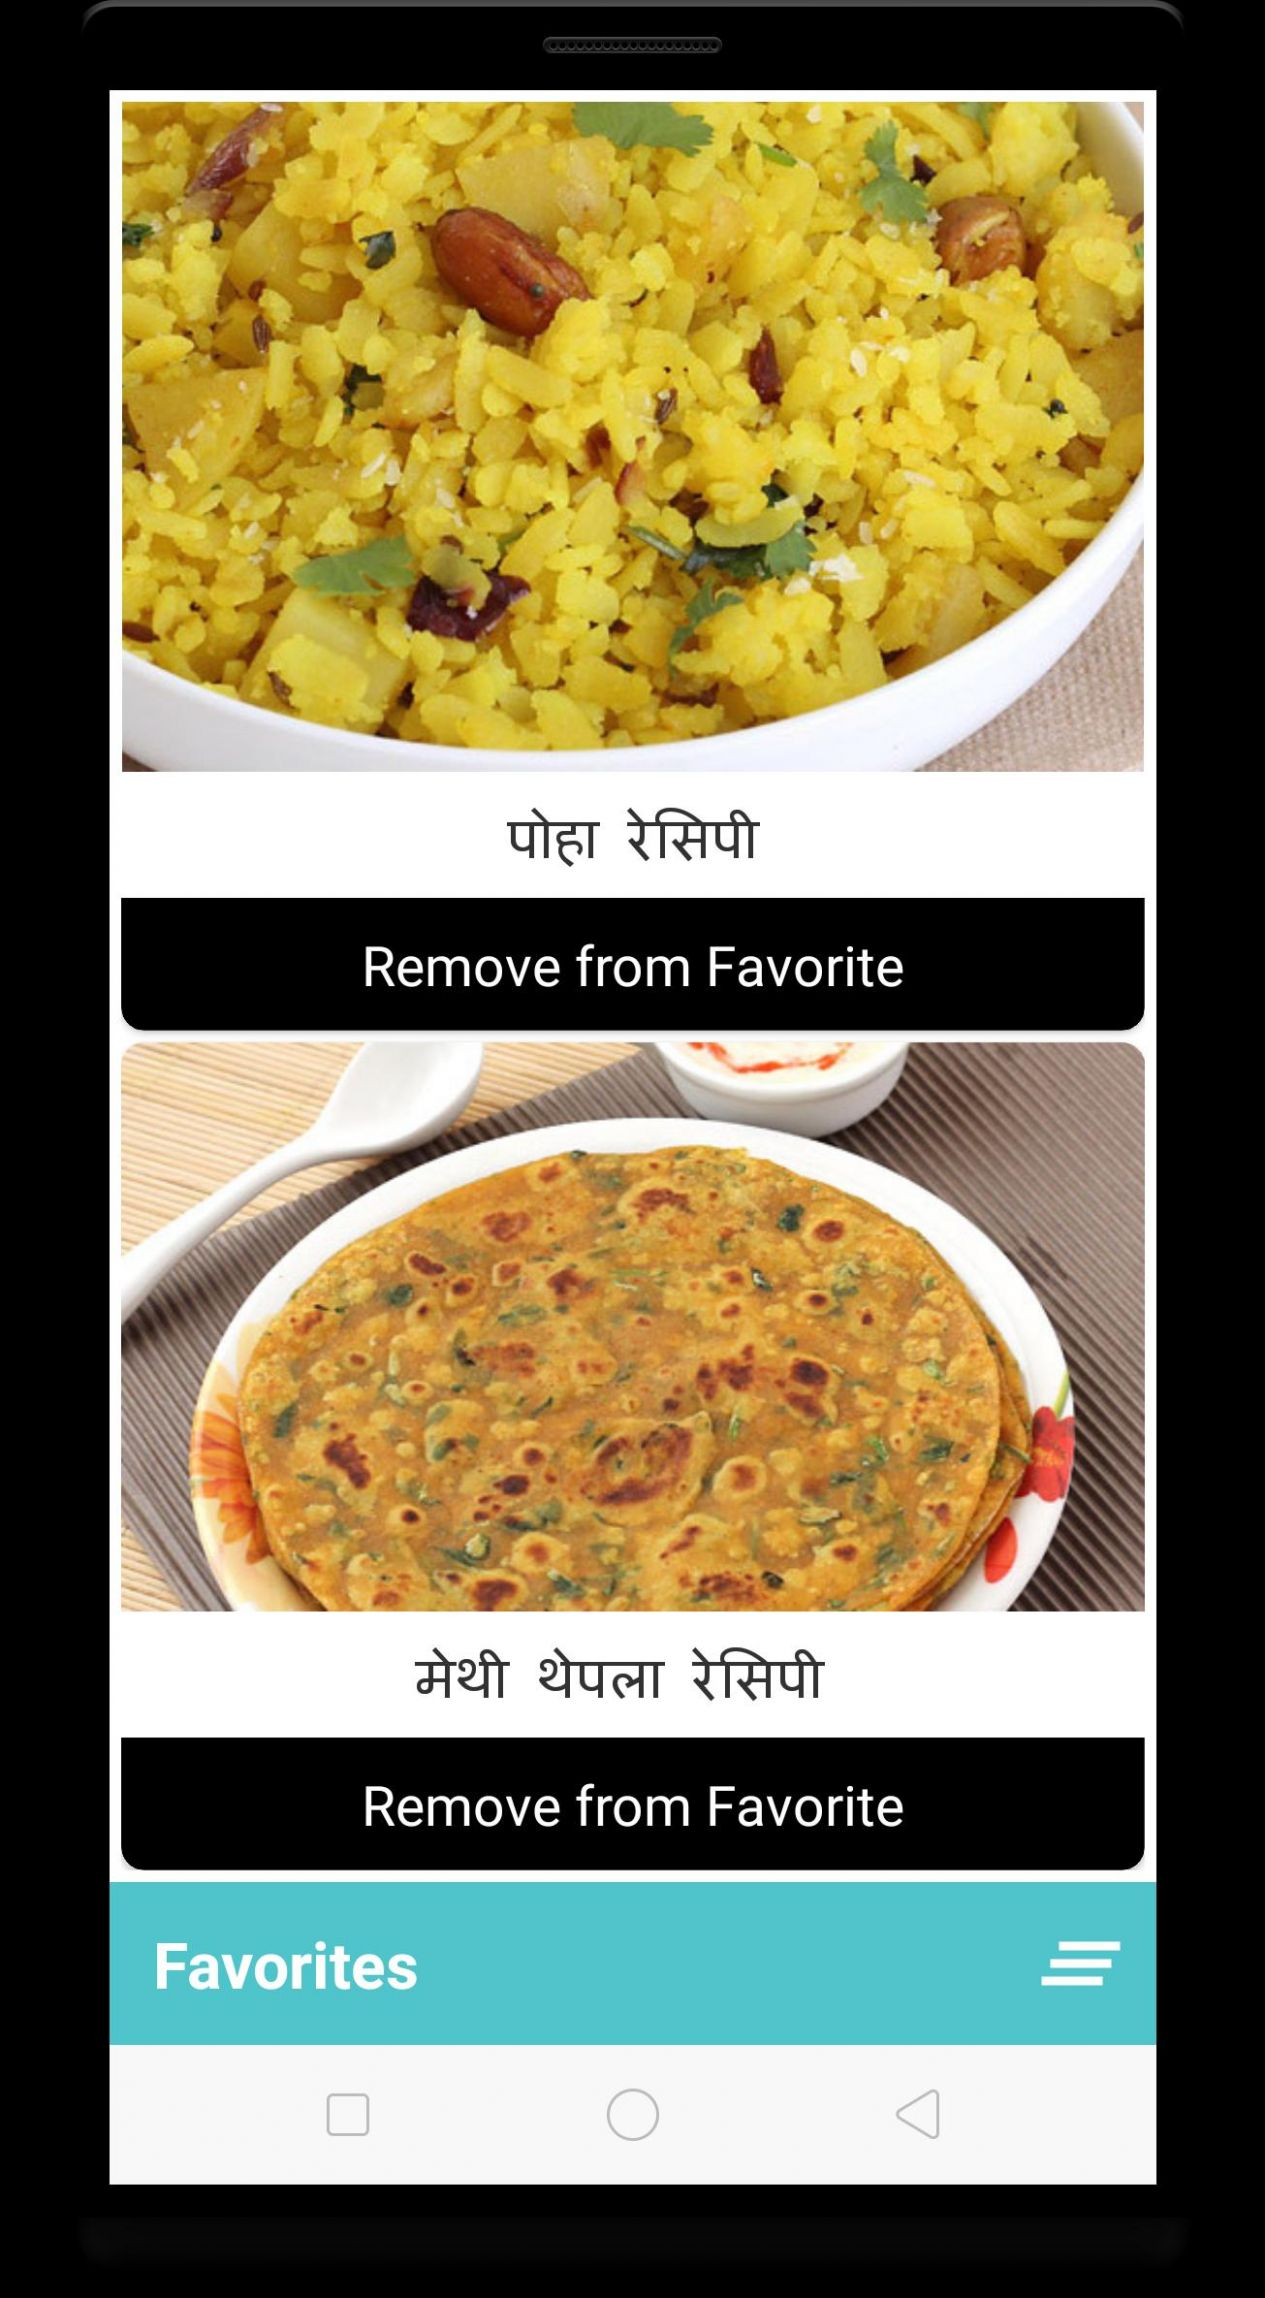 Breakfast Recipes (HINDI) for Android - APK Download - Breakfast Recipes List In Hindi